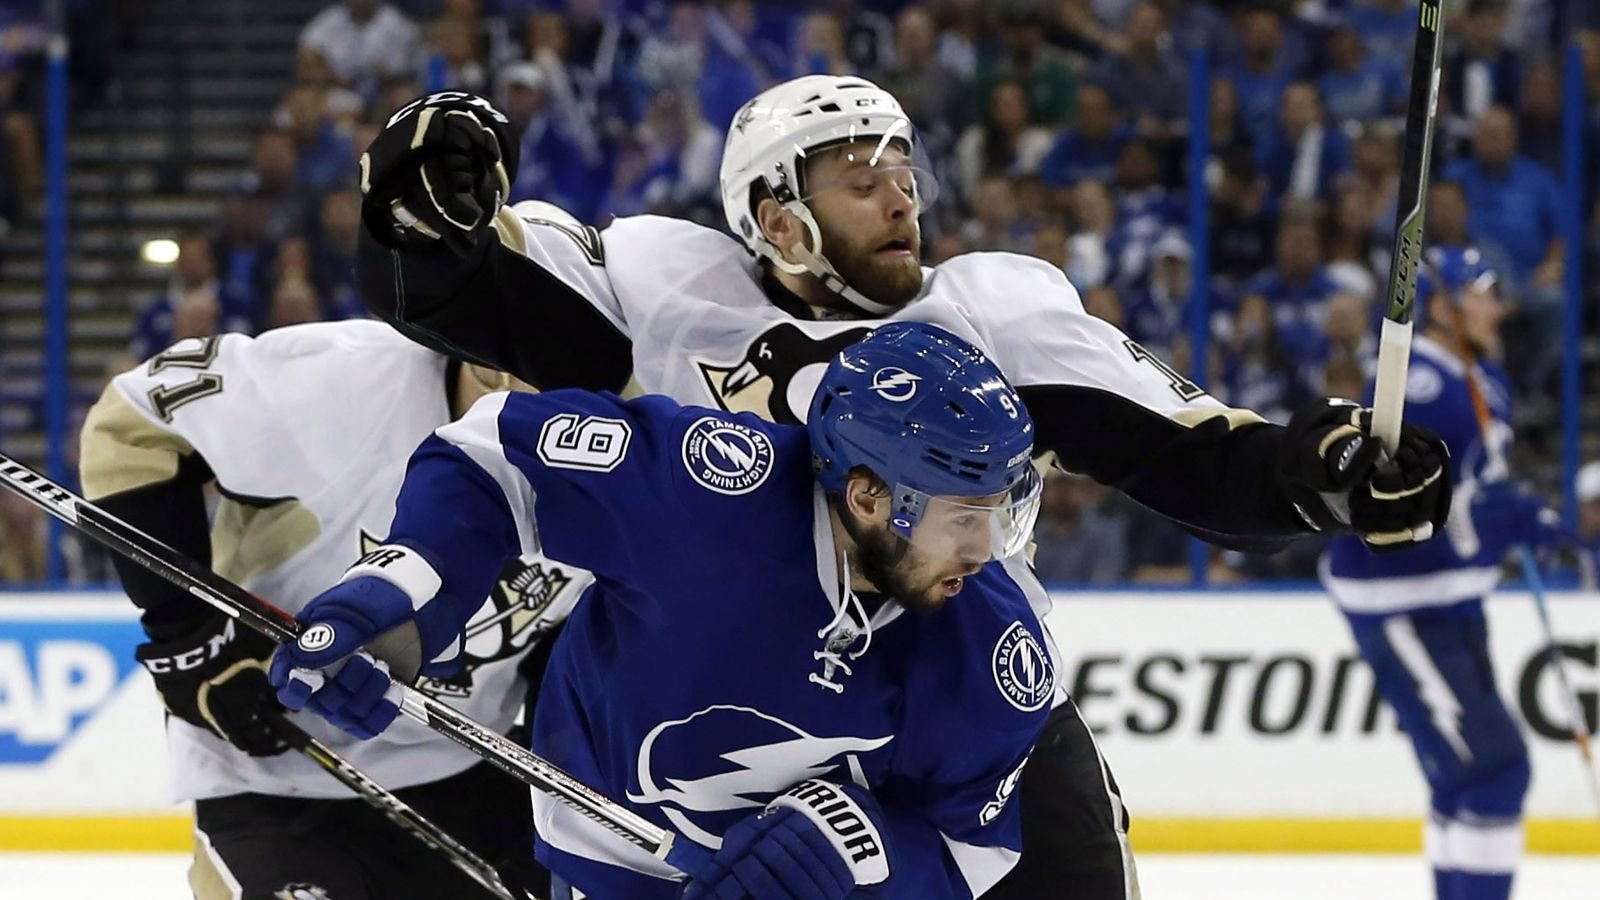 want to win sold out tampa bay lightning playoff tickets here are a